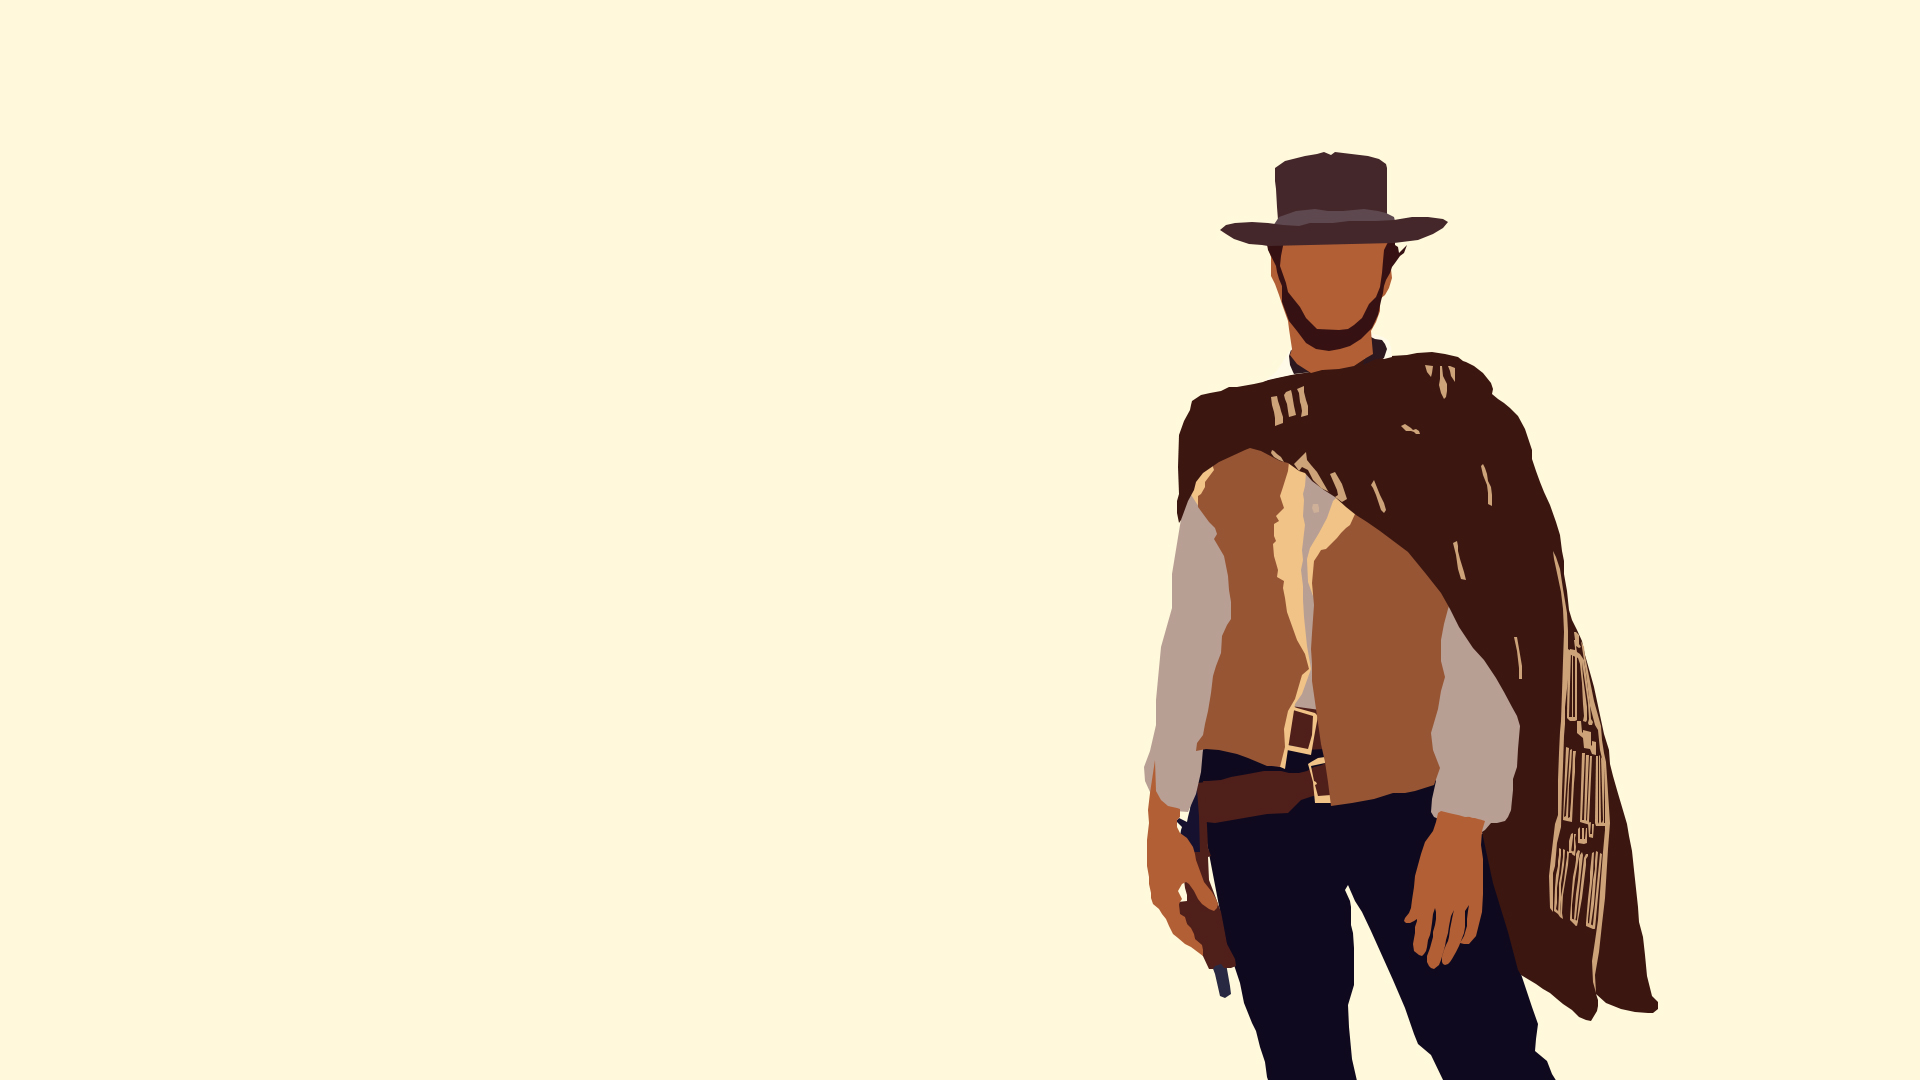 The Man With No Name Clint Eastwood Hd Wallpaper Background